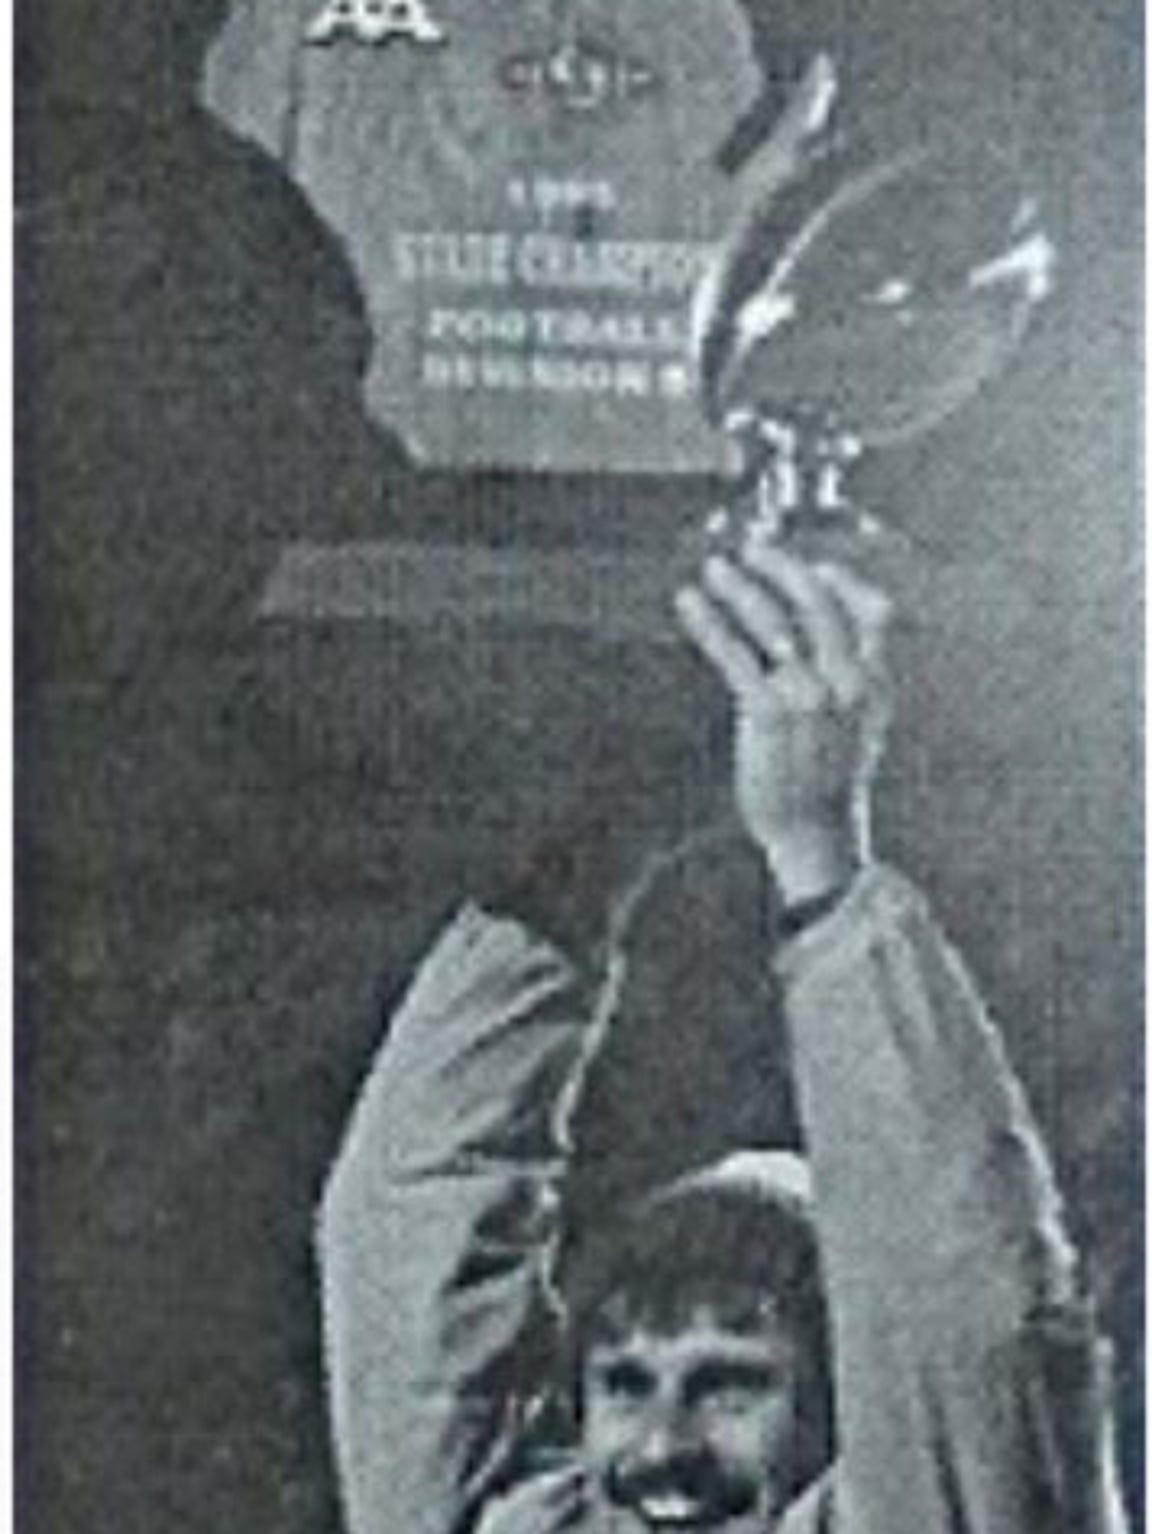 New Berlin Eisenhower coach Jeff Setz hoists the 1995